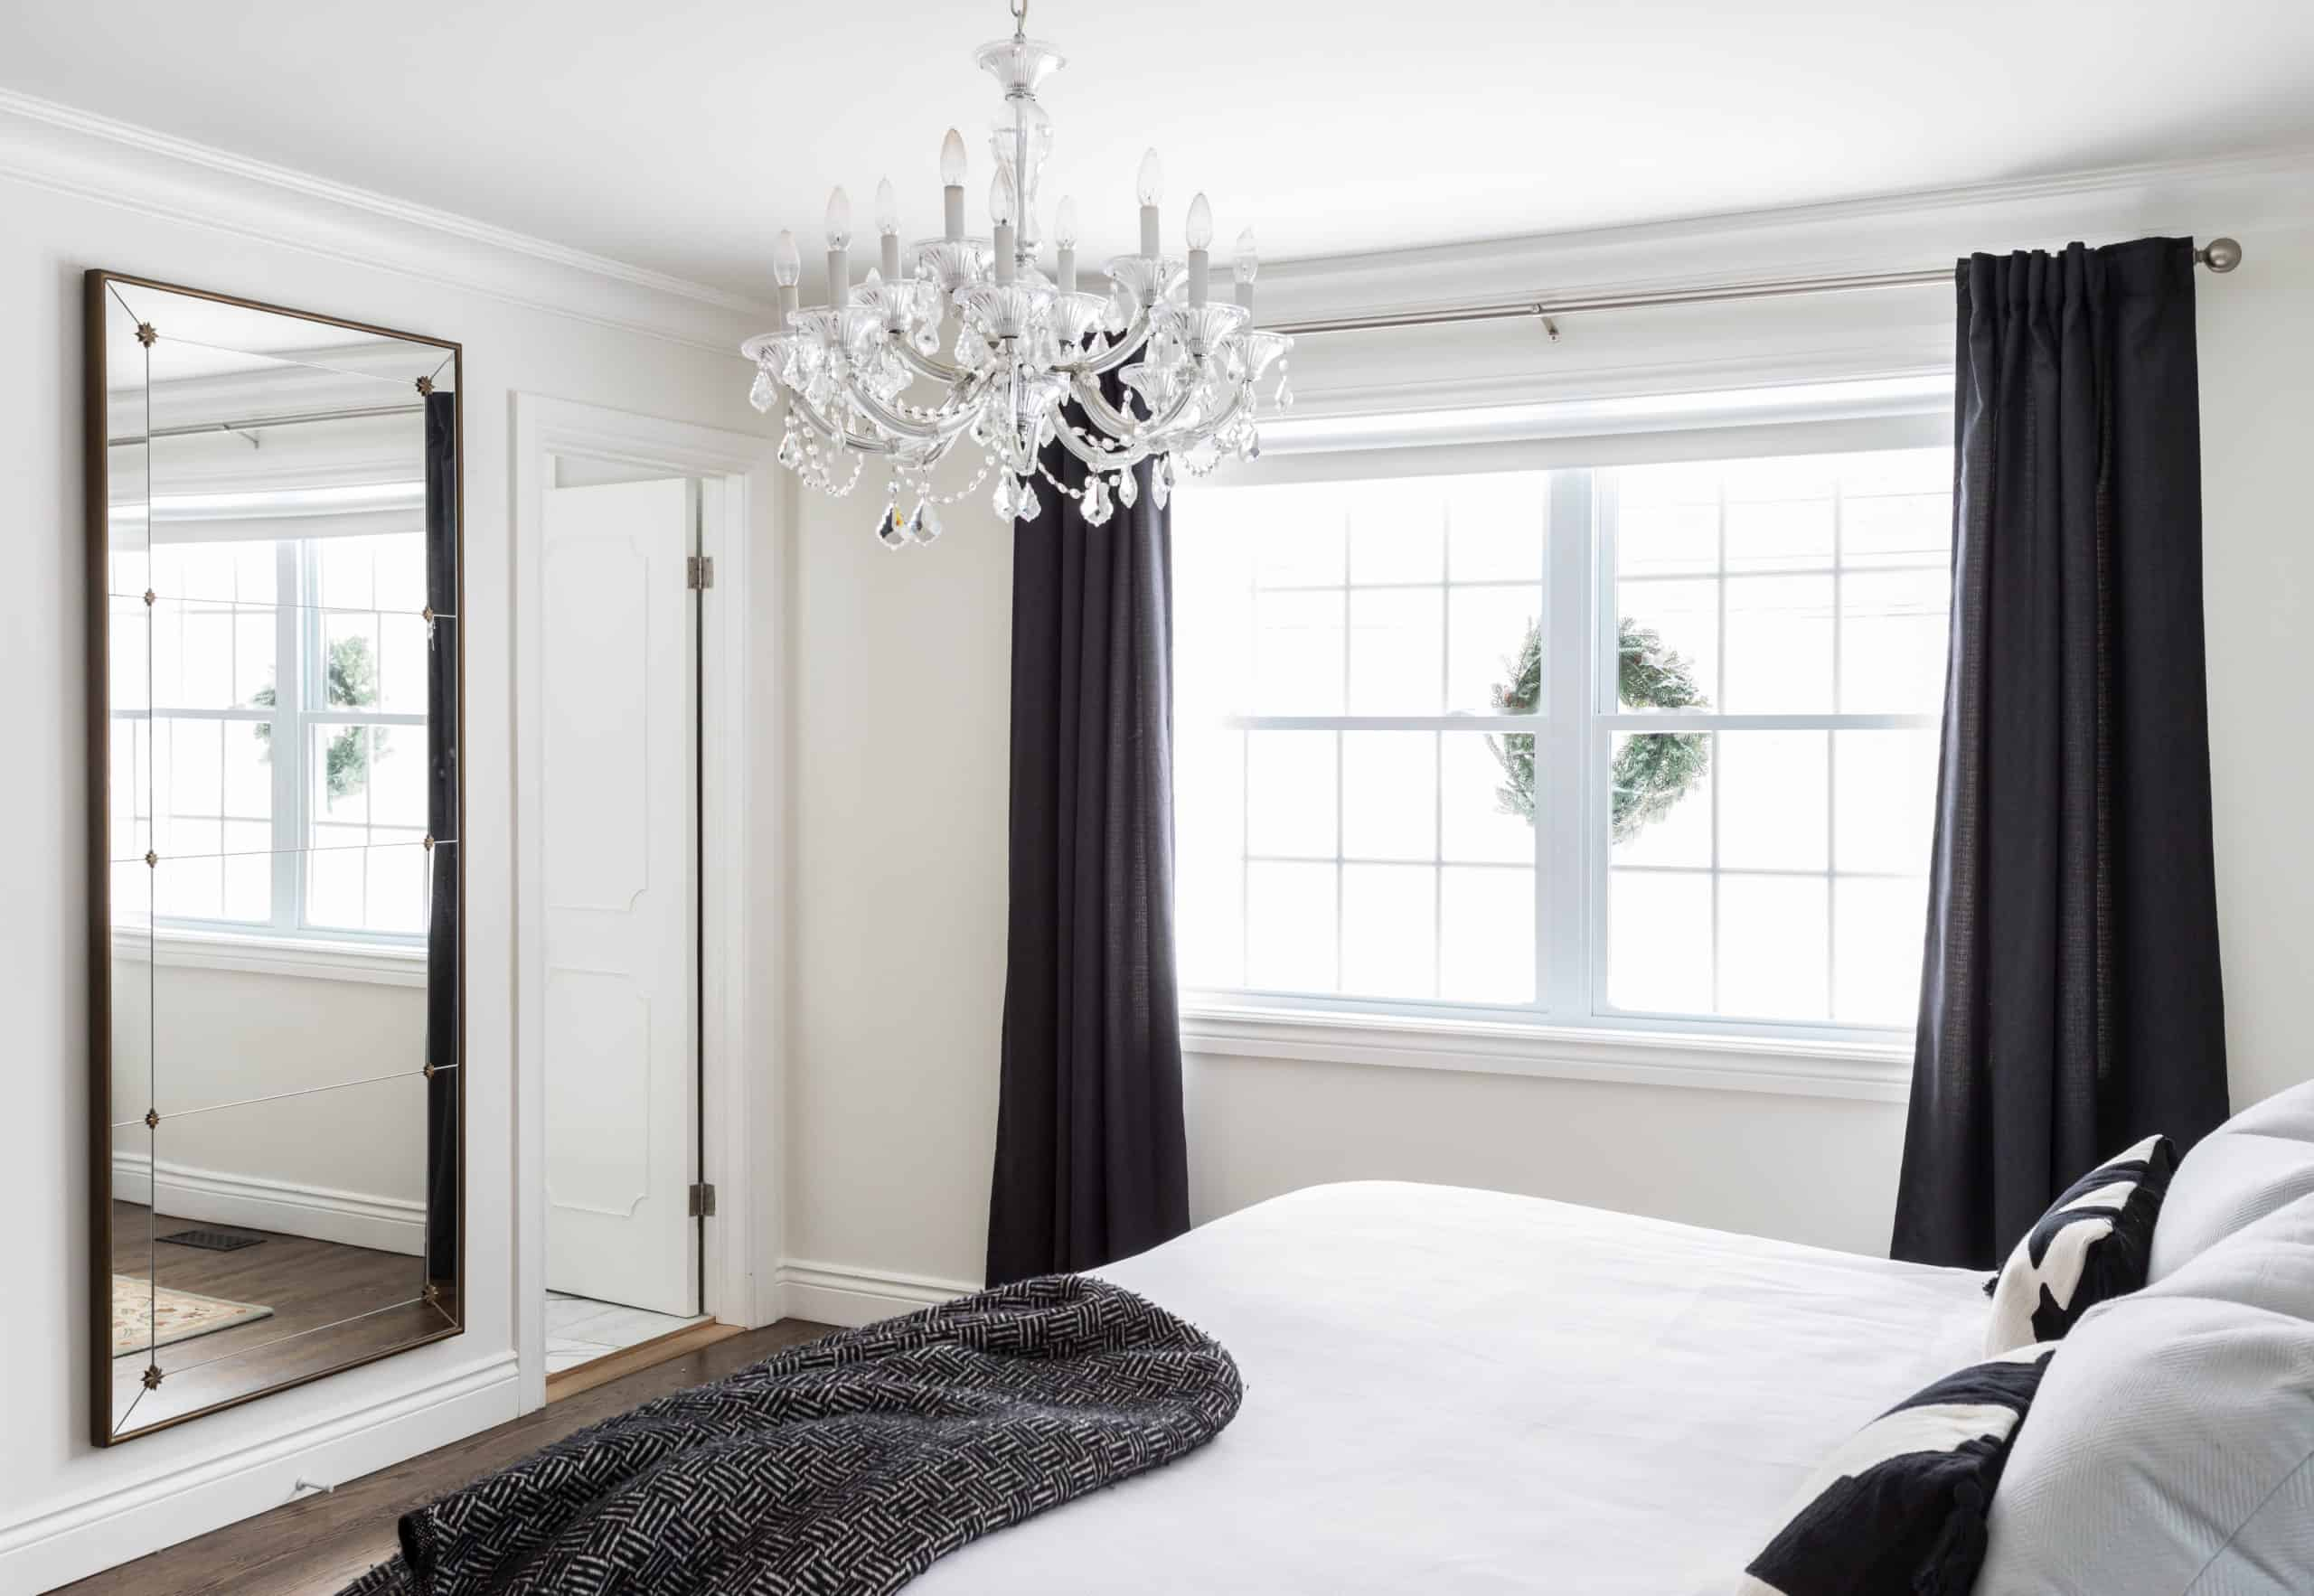 Modern master bedroom with a fancy, white chandelier